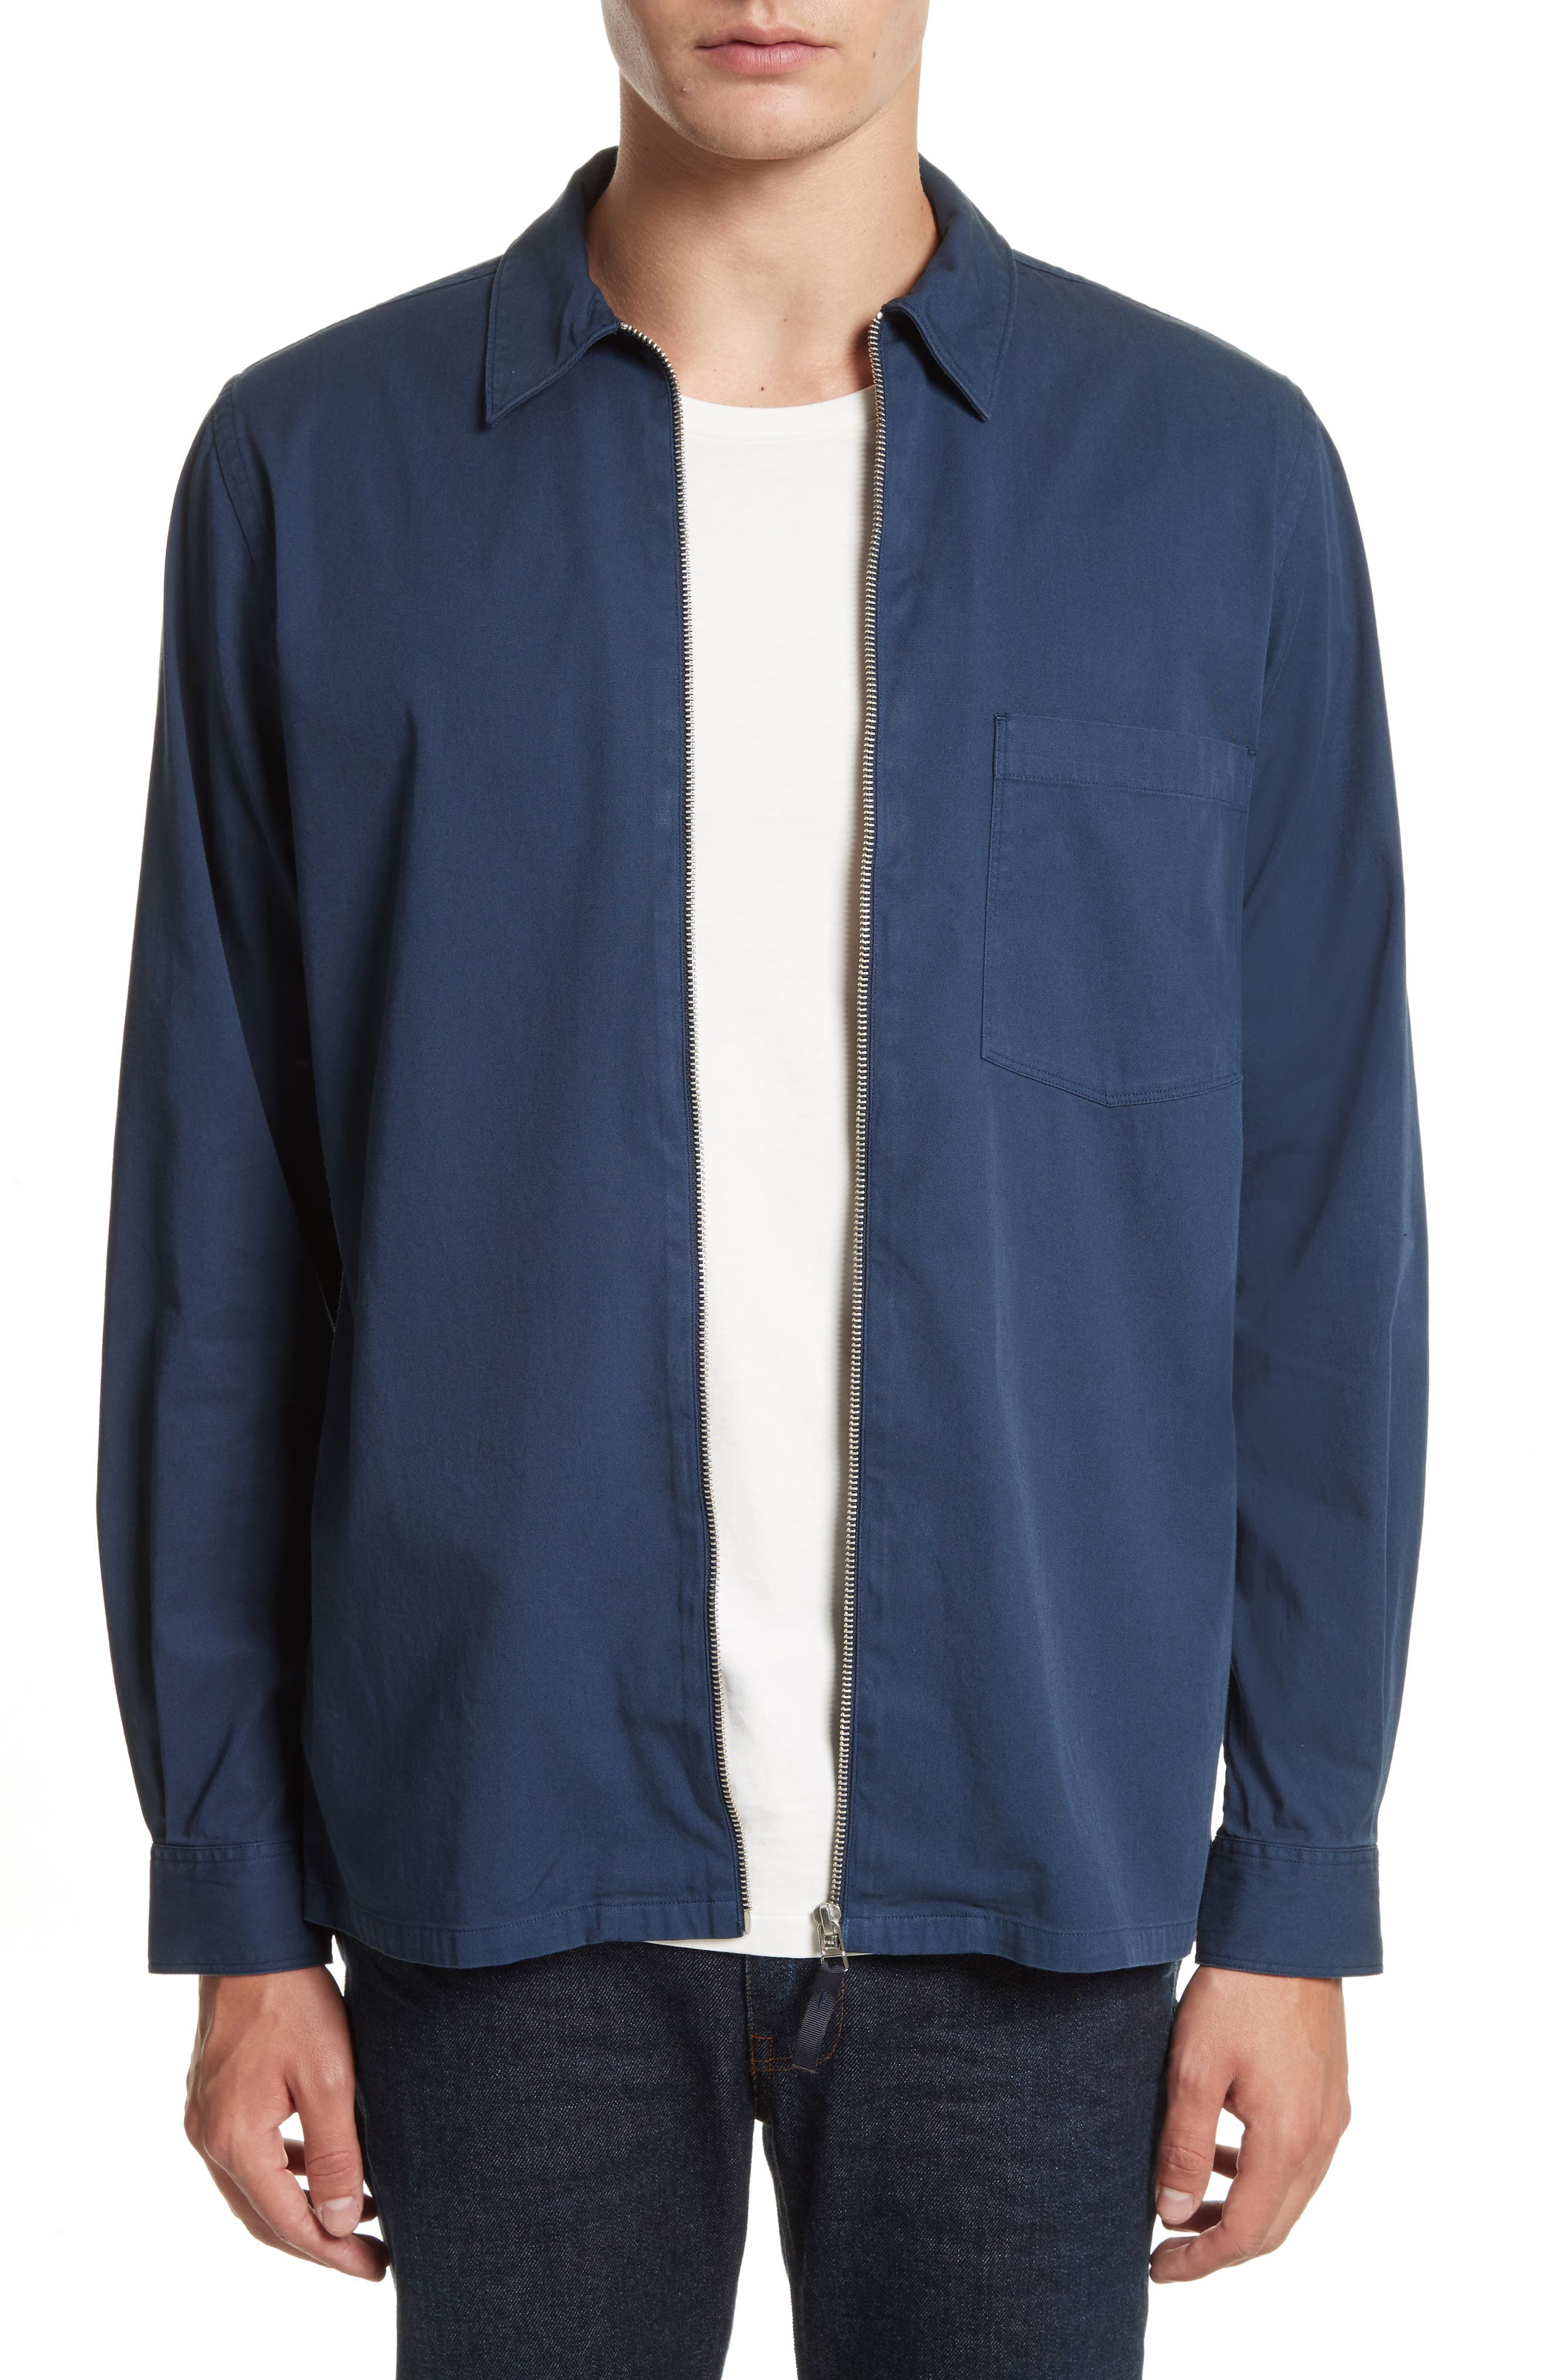 Main Image - Norse Projects Jens Garment Dyed Twill Jacket